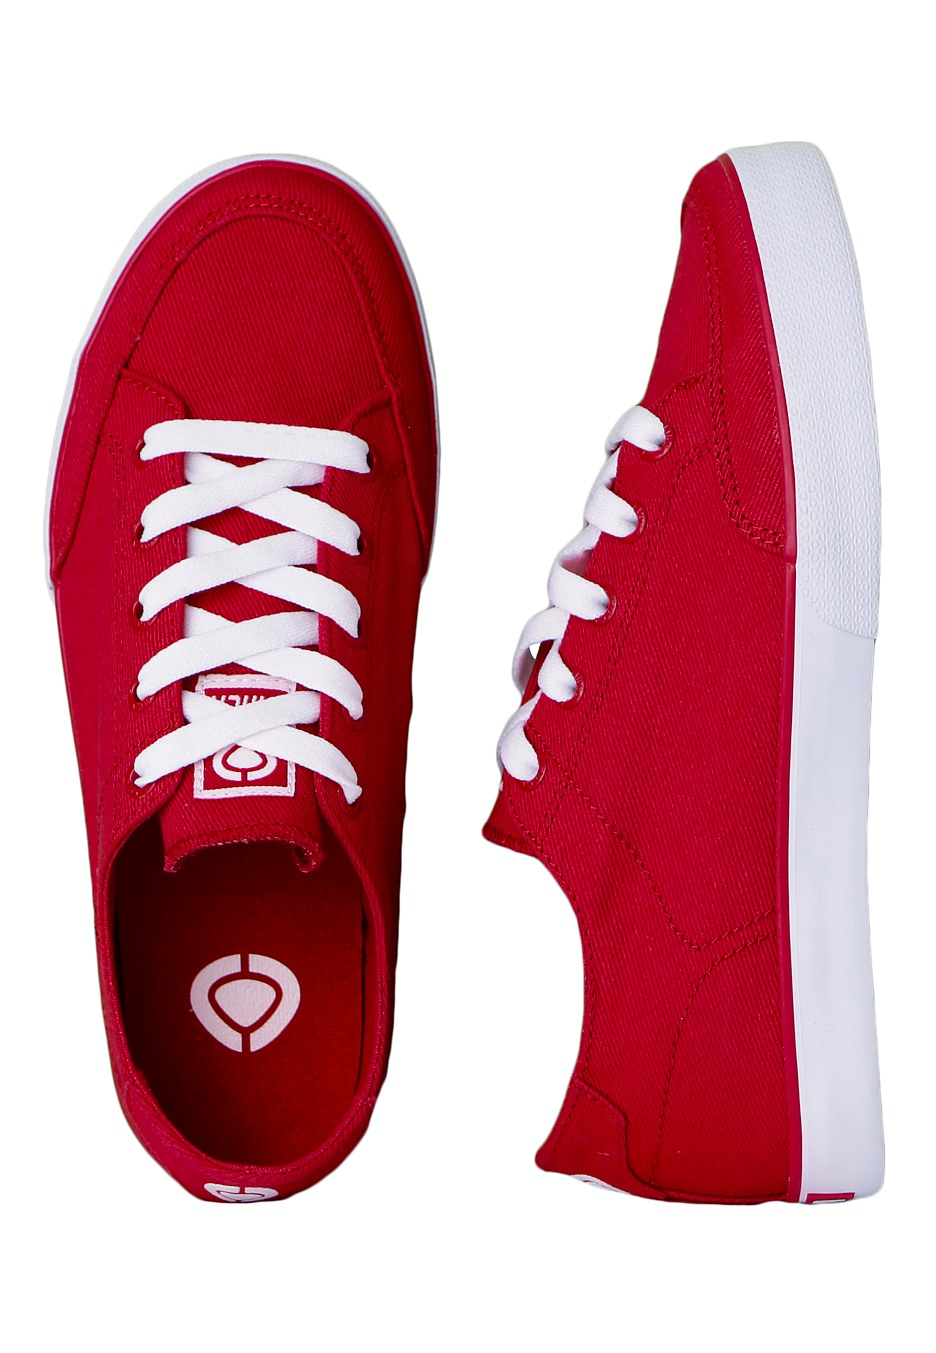 C1RCA - 50 Classic Red - Girl Shoes - Impericon.com Worldwide